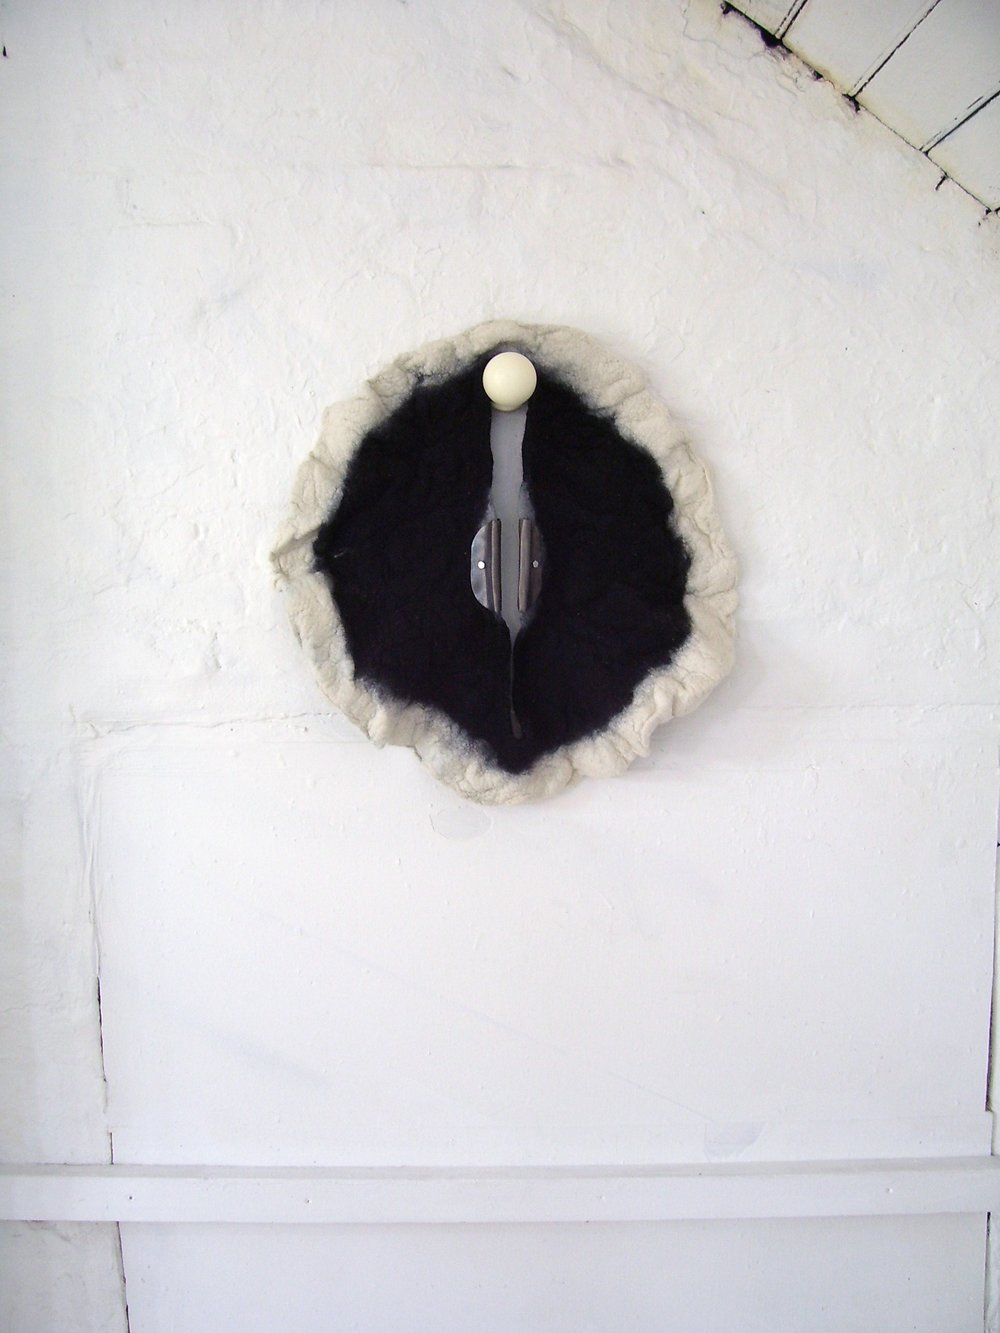 in situ at tactile bosch studios 2011, handmade felt, lead and wood.